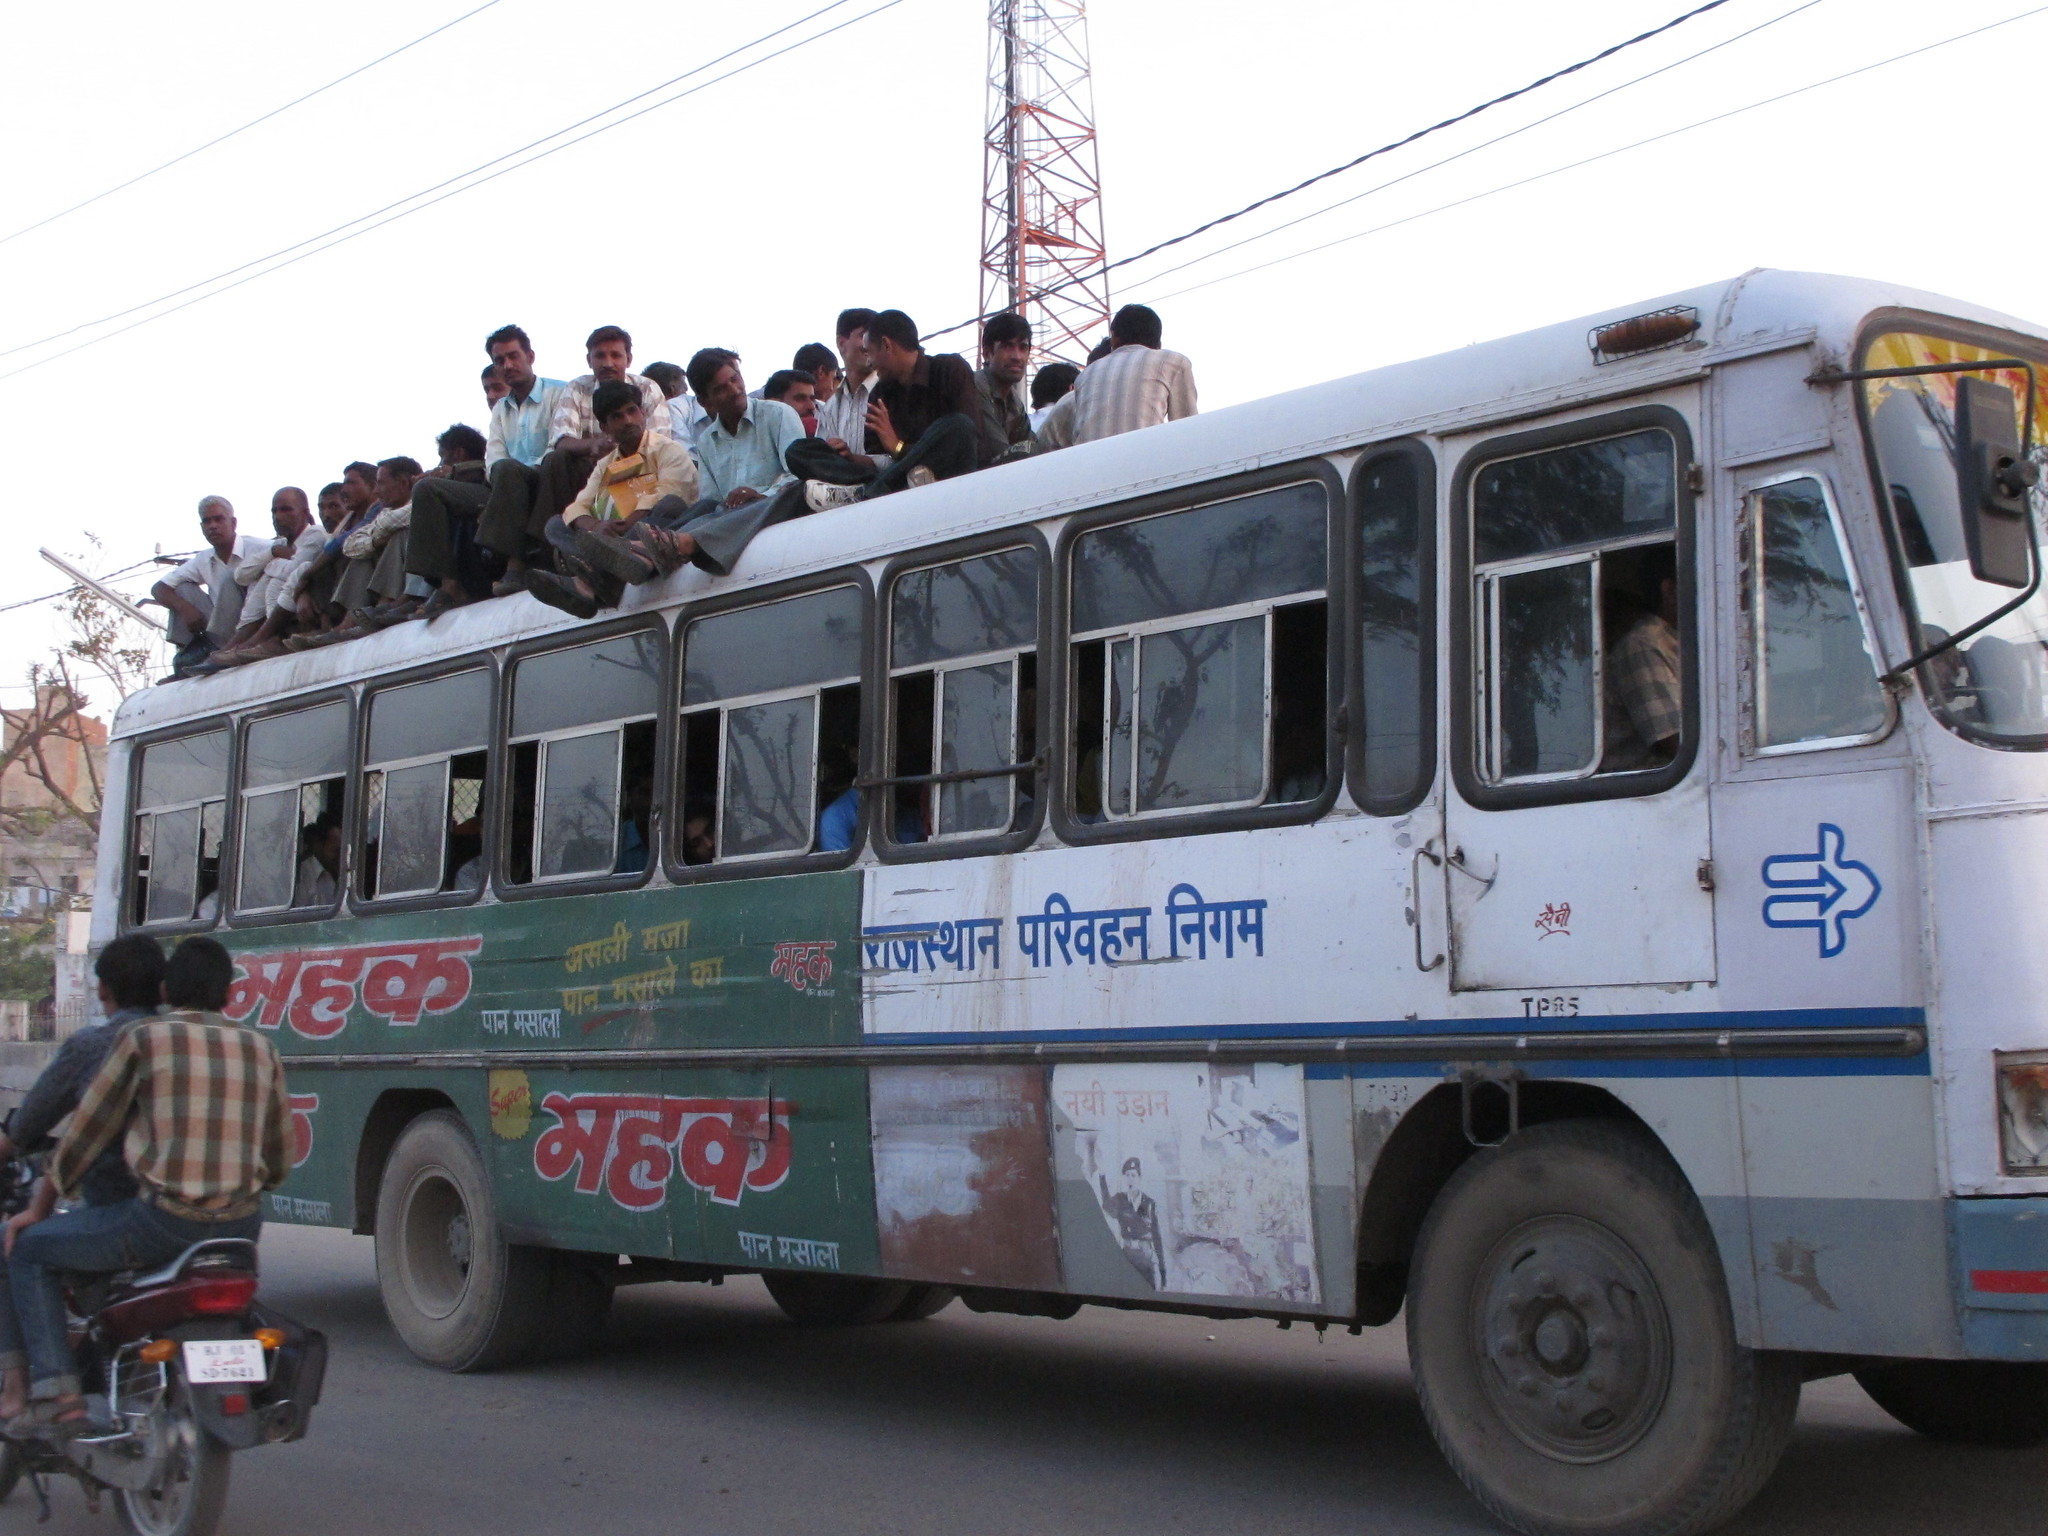 A crowded bus in India